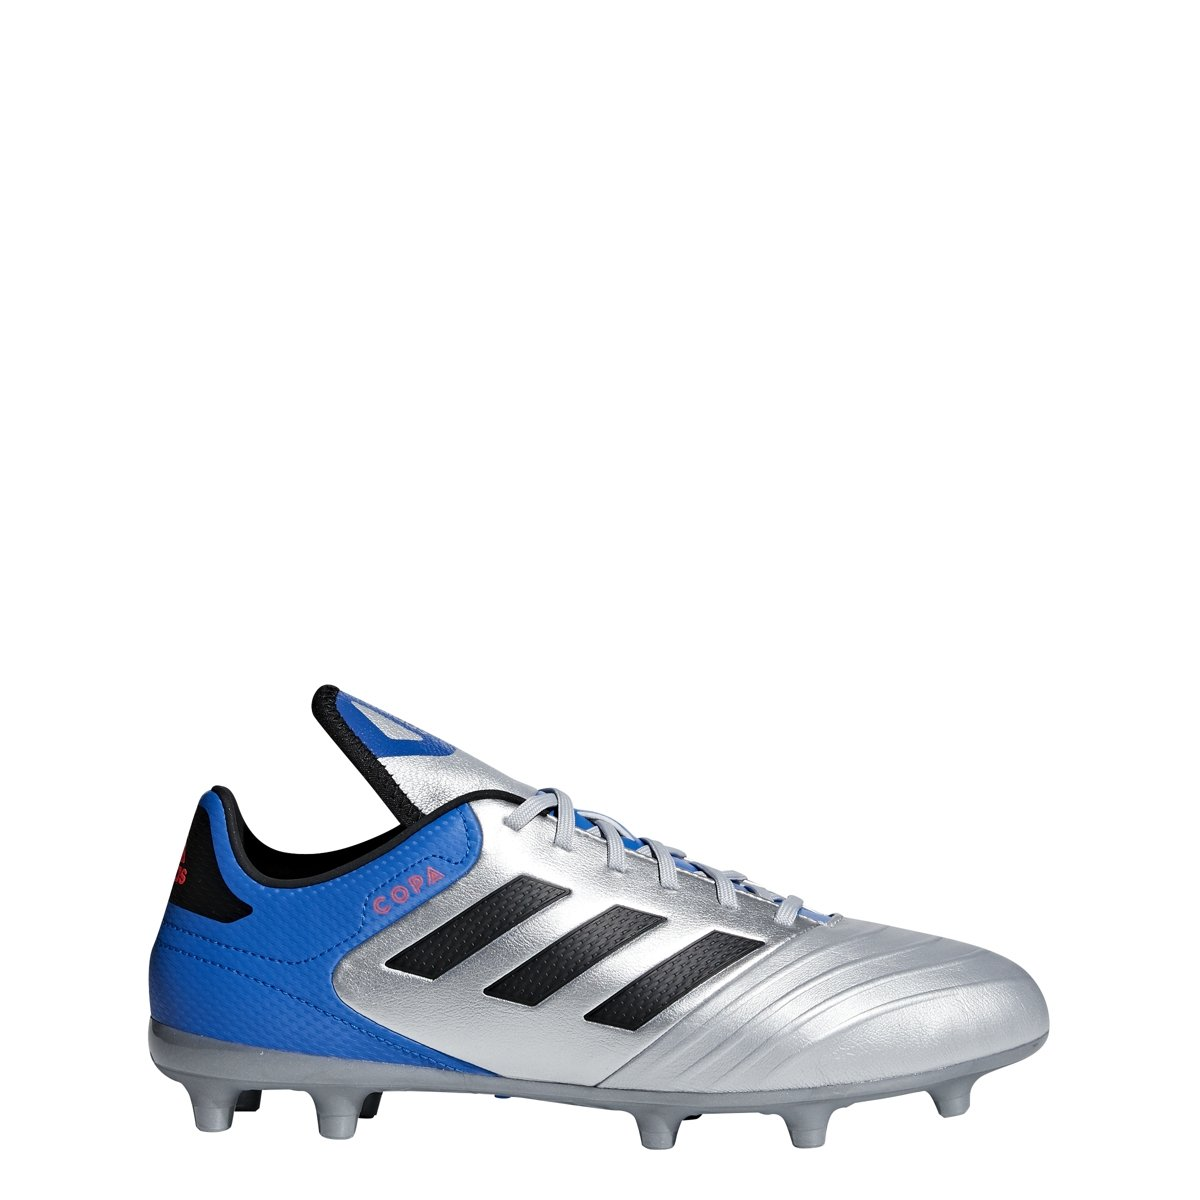 adidas Men's Copa 18.3 Firm Ground Soccer Shoe B0785FD61L 10 D(M) US|Silver Metallic/Black/Football Blue